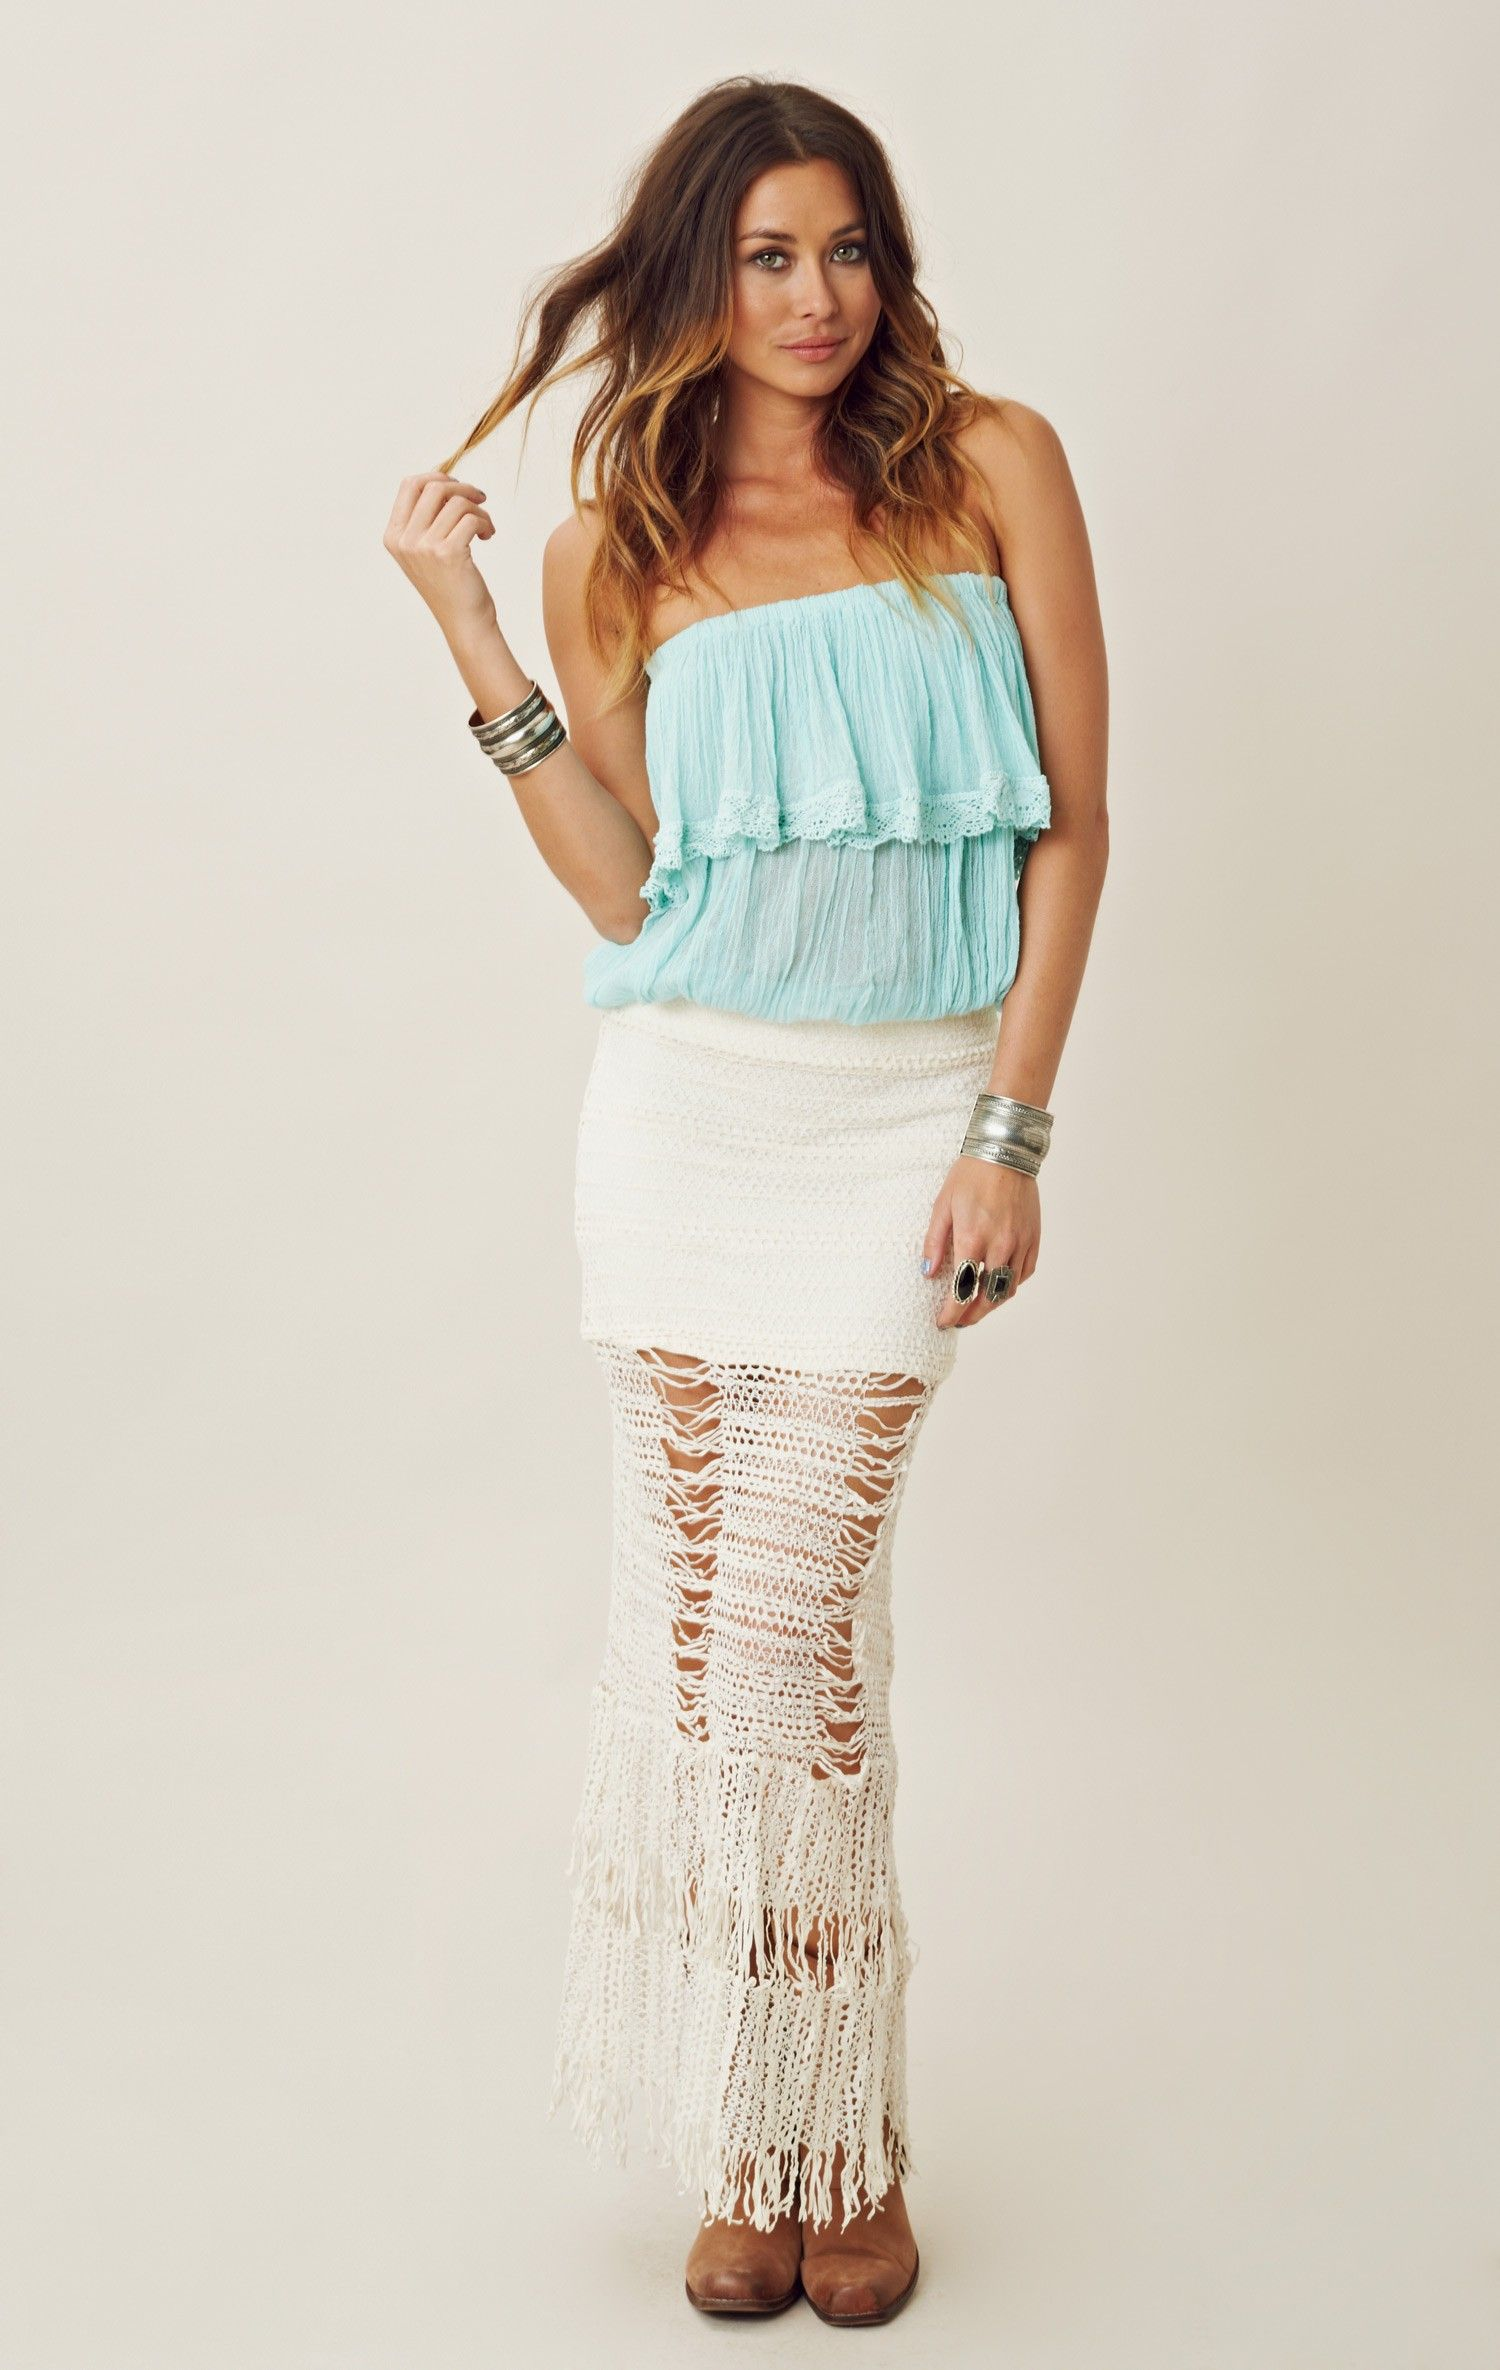 jens pirate booty cha cha tube top | passion for fashion | pinterest